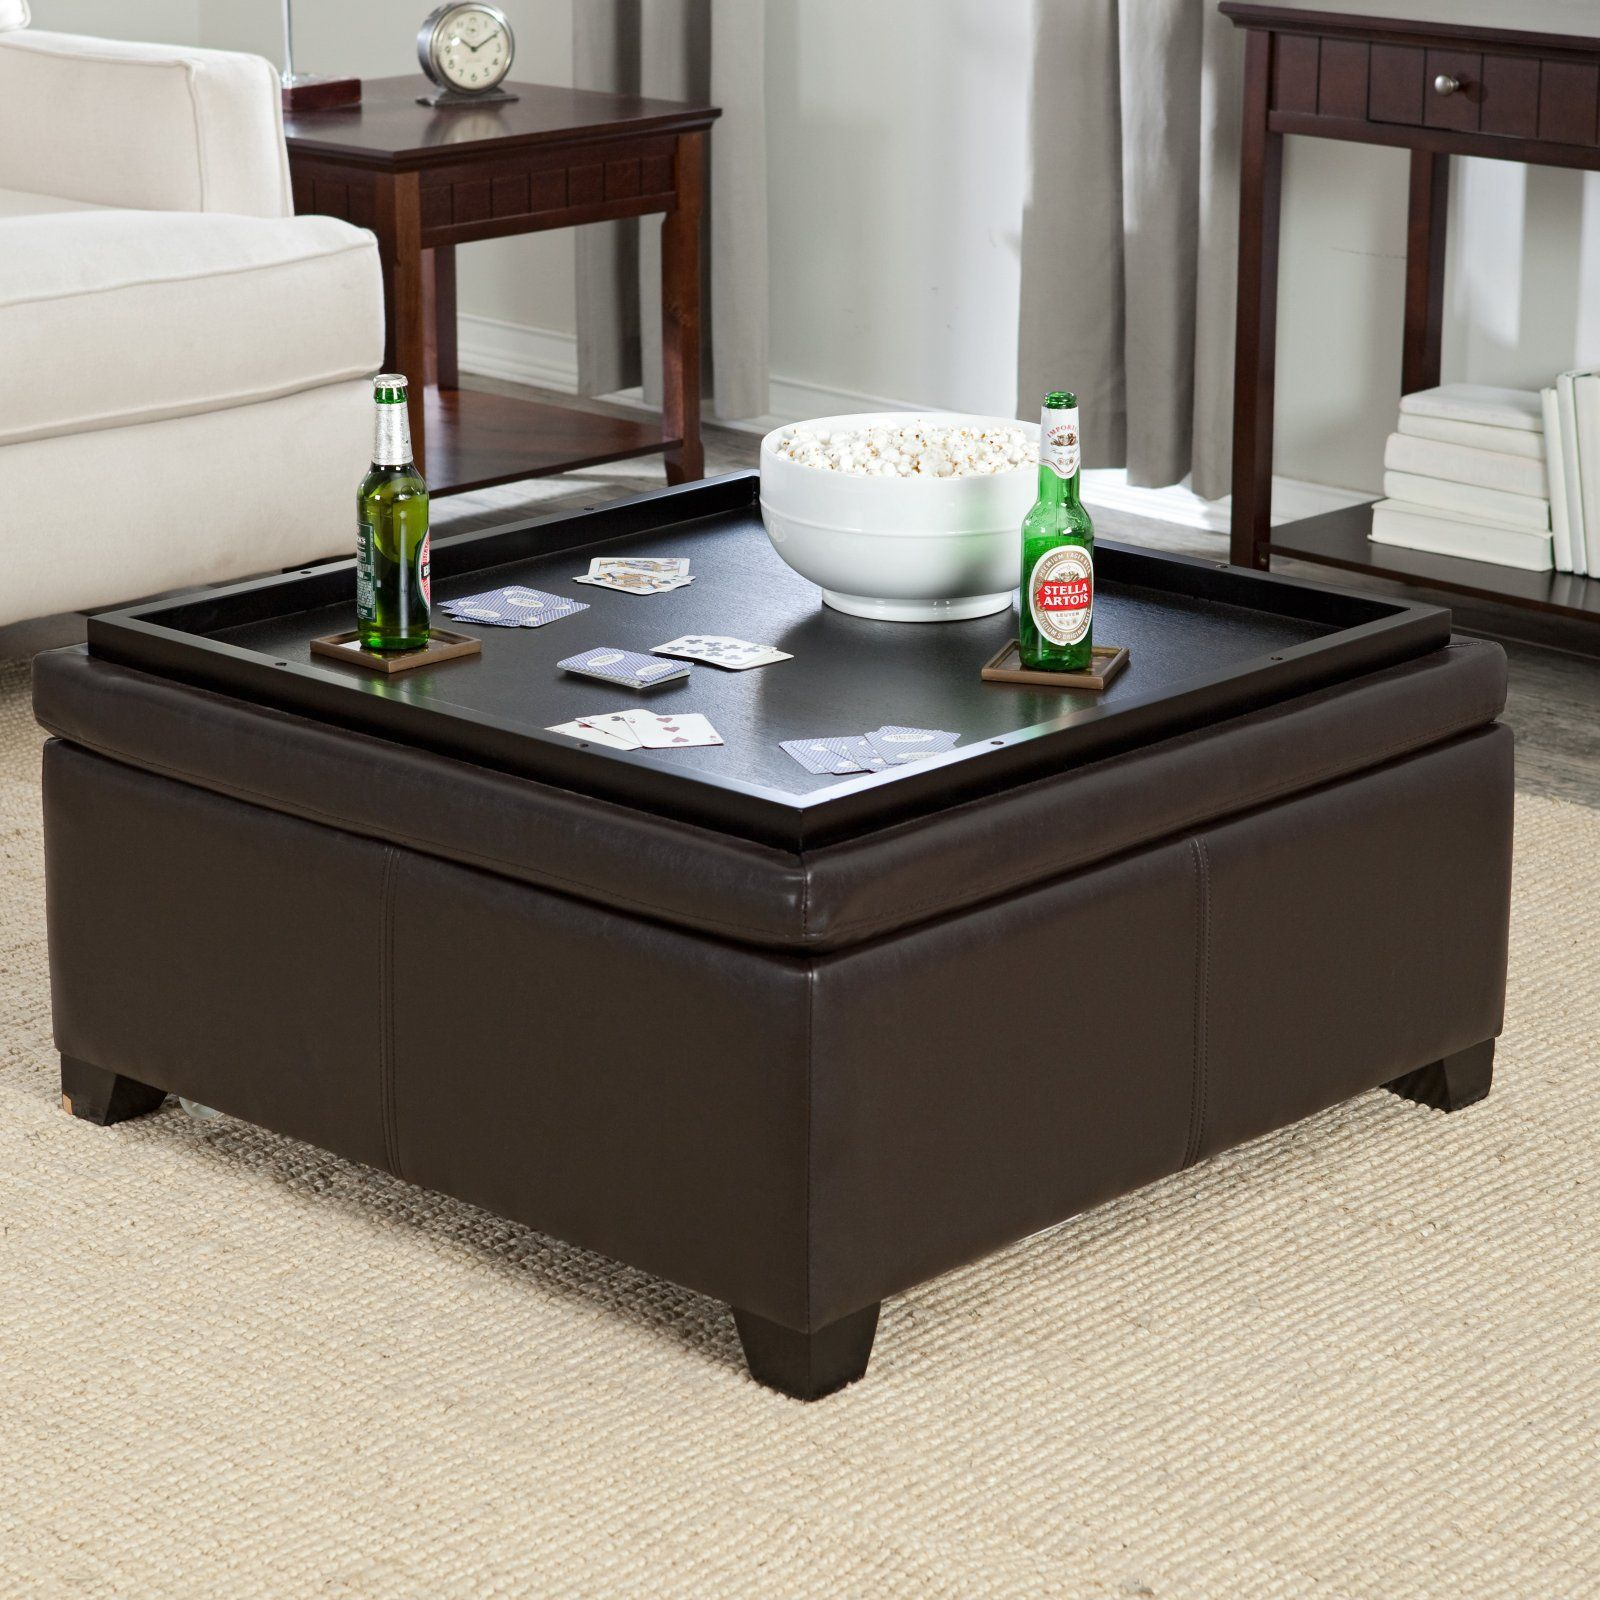 Corbett Coffee Table Storage Ottoman Square Ottomans at Ottomans